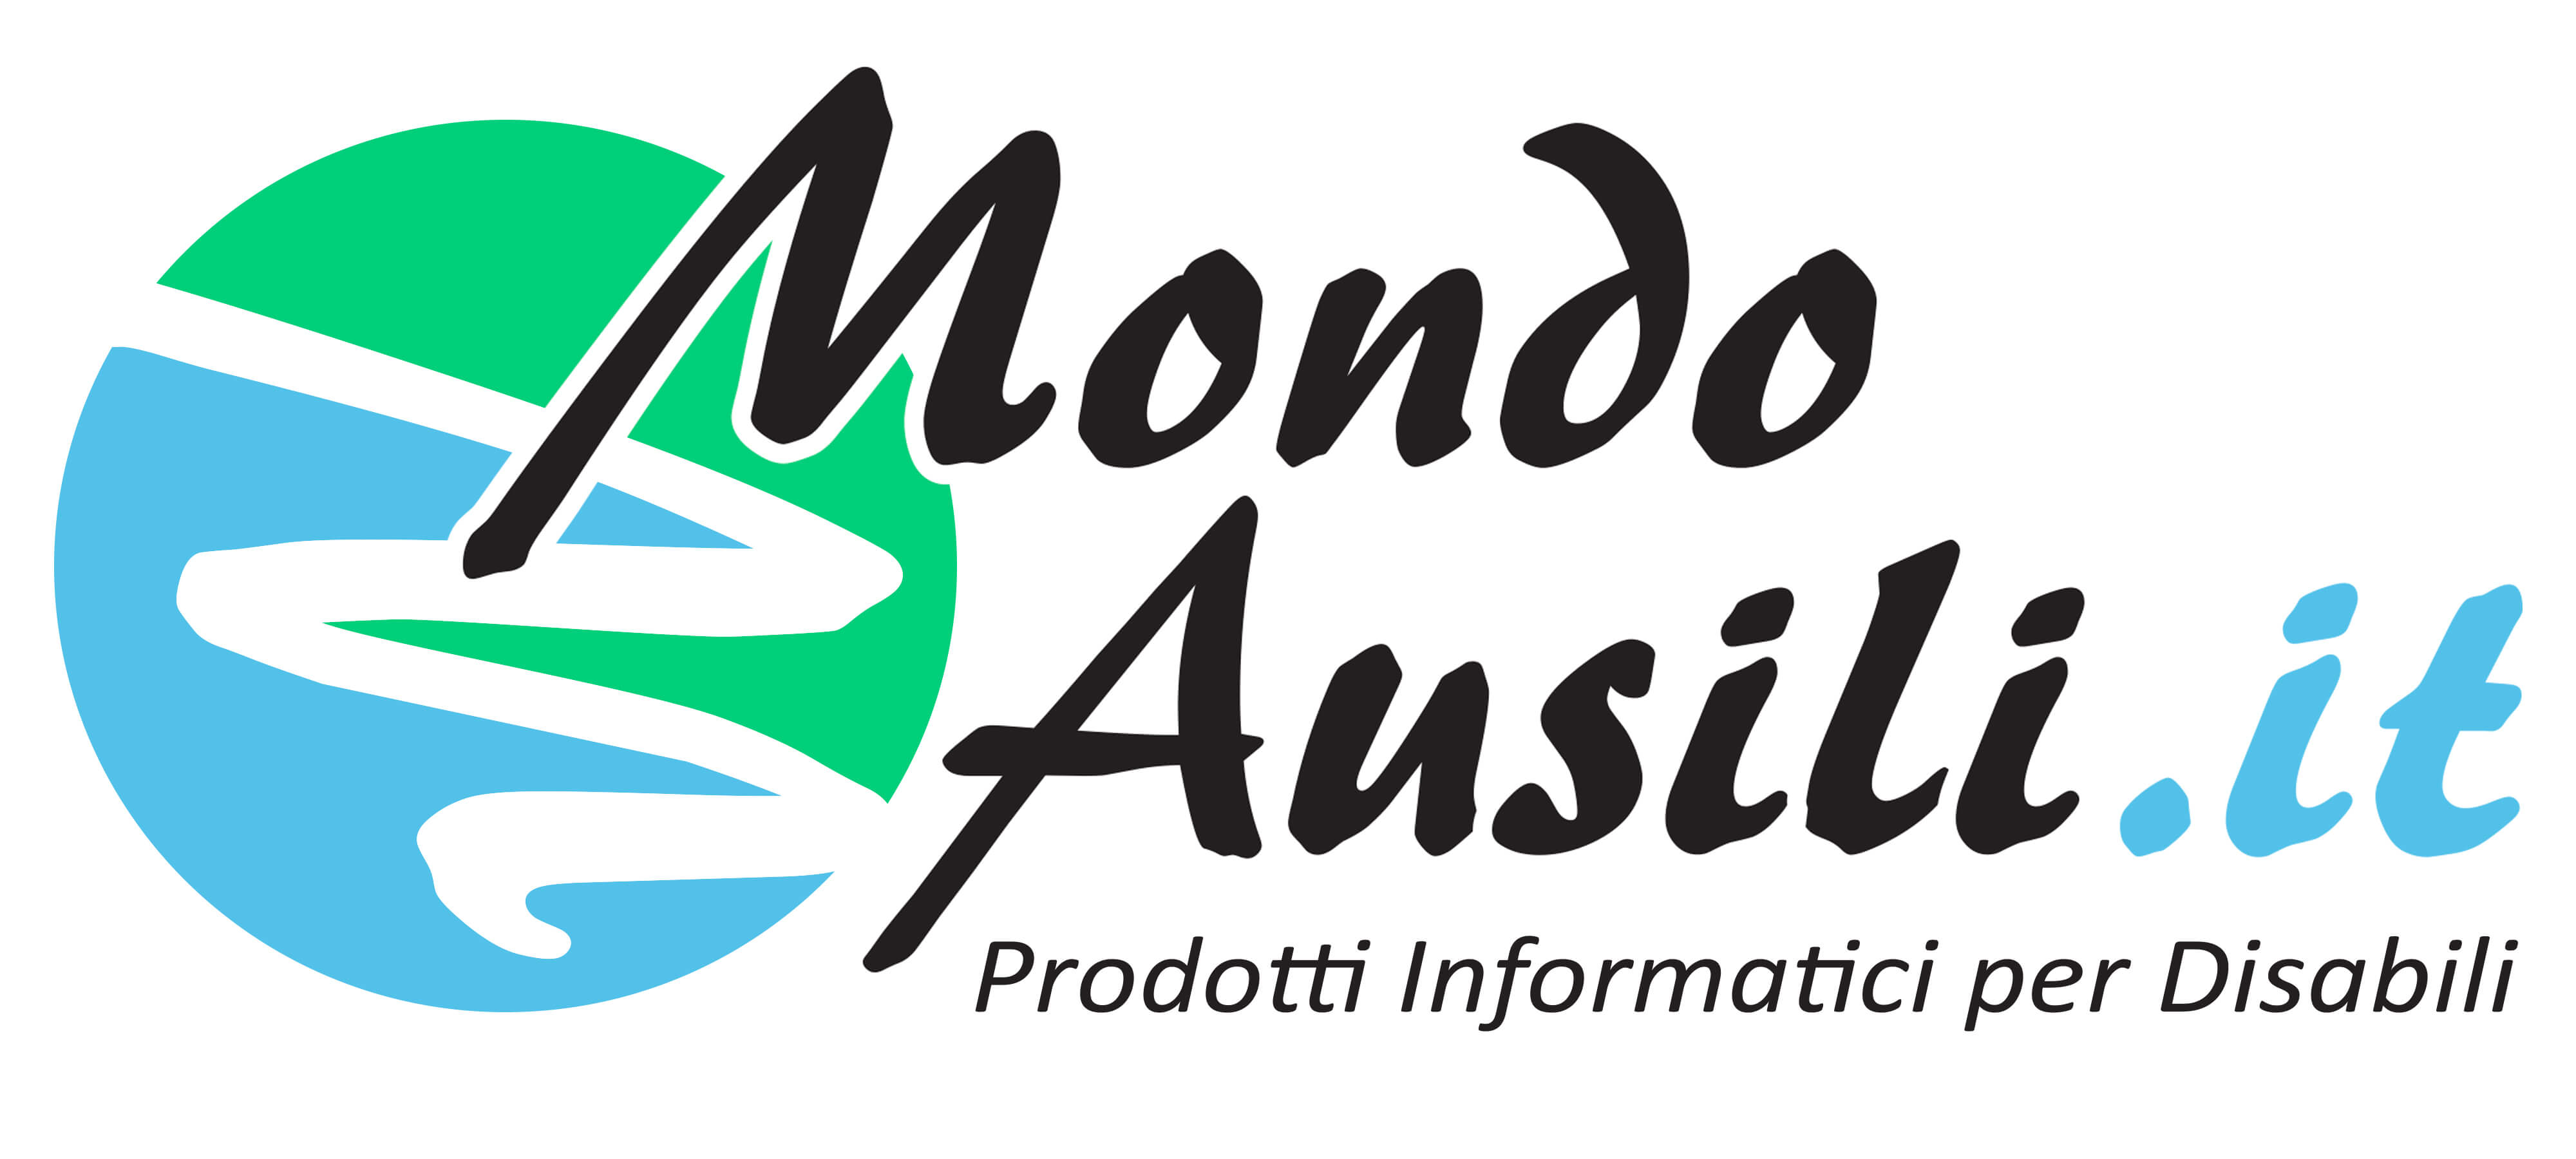 MondoAusili.it - Albamatic srl